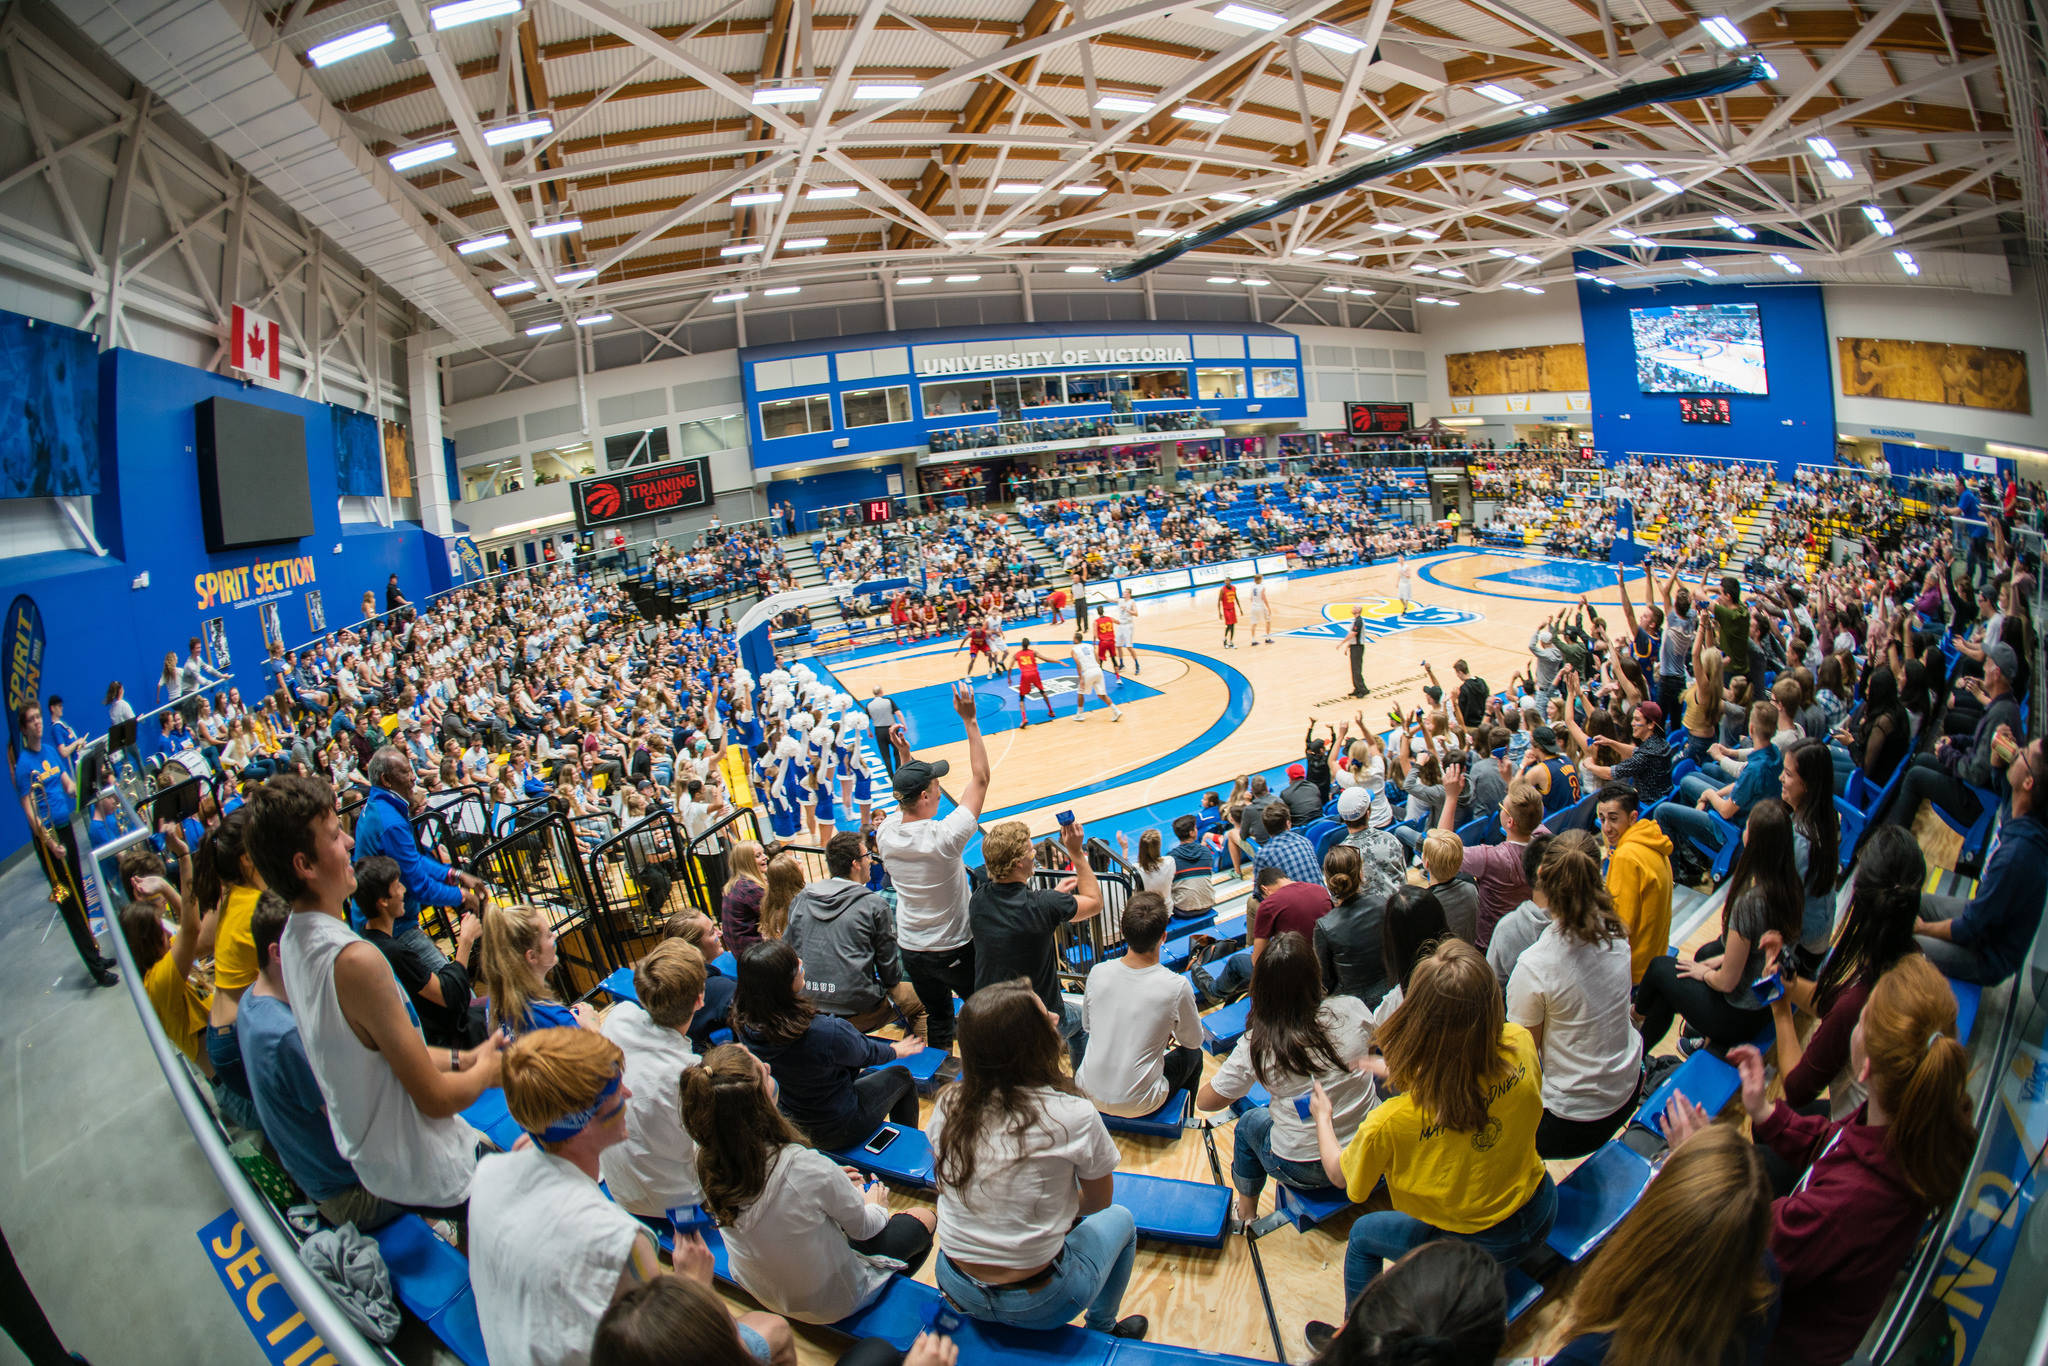 The UVic Vikes draw a big crowd at CARSA for the preseason Canada West game in this 2017 photo. While the size of public gatherings is still restricted, COVID-19 regulations have been relaxed slightly and some people are longing for the time when they are able to congregate once again. (APShutter.com/UVicVikes)